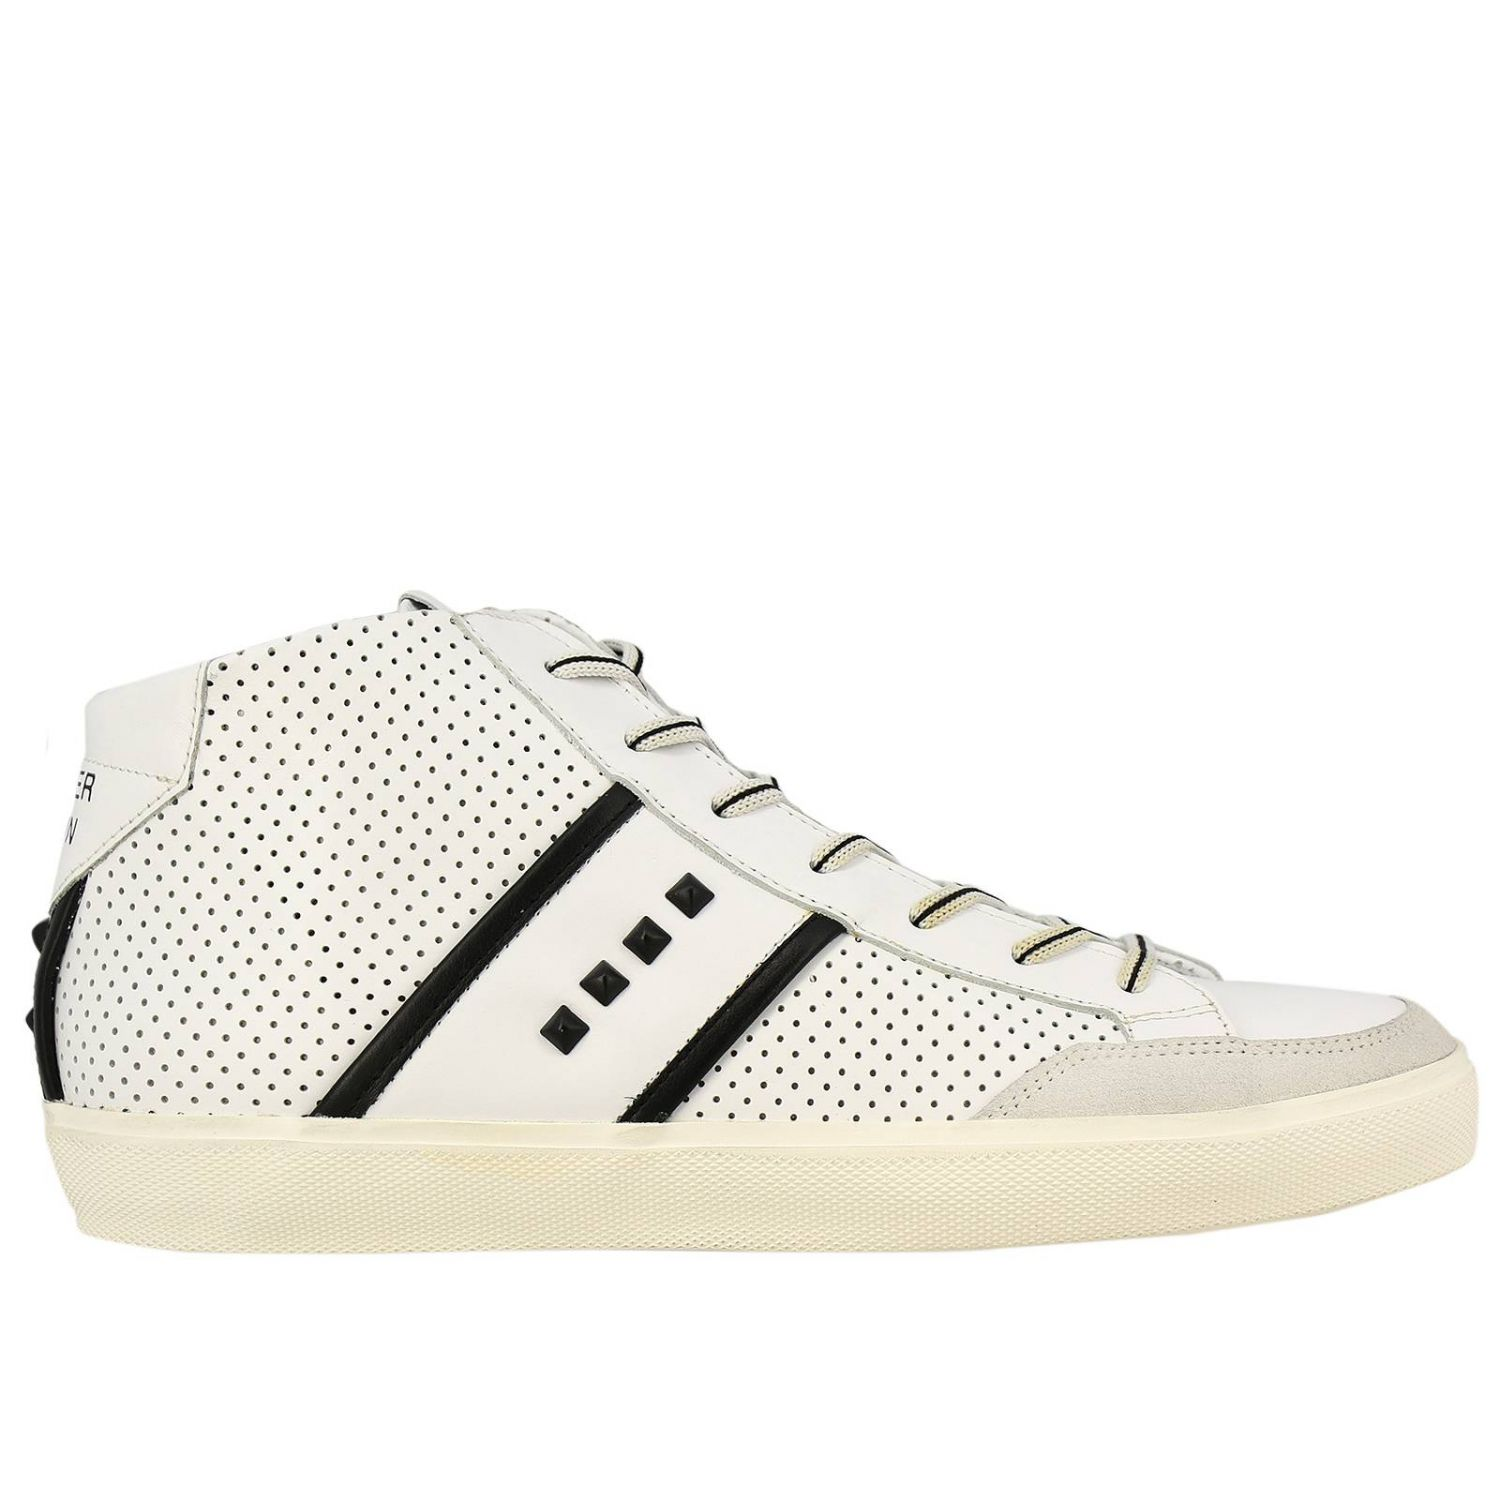 Shoes men Leather Crown white 1